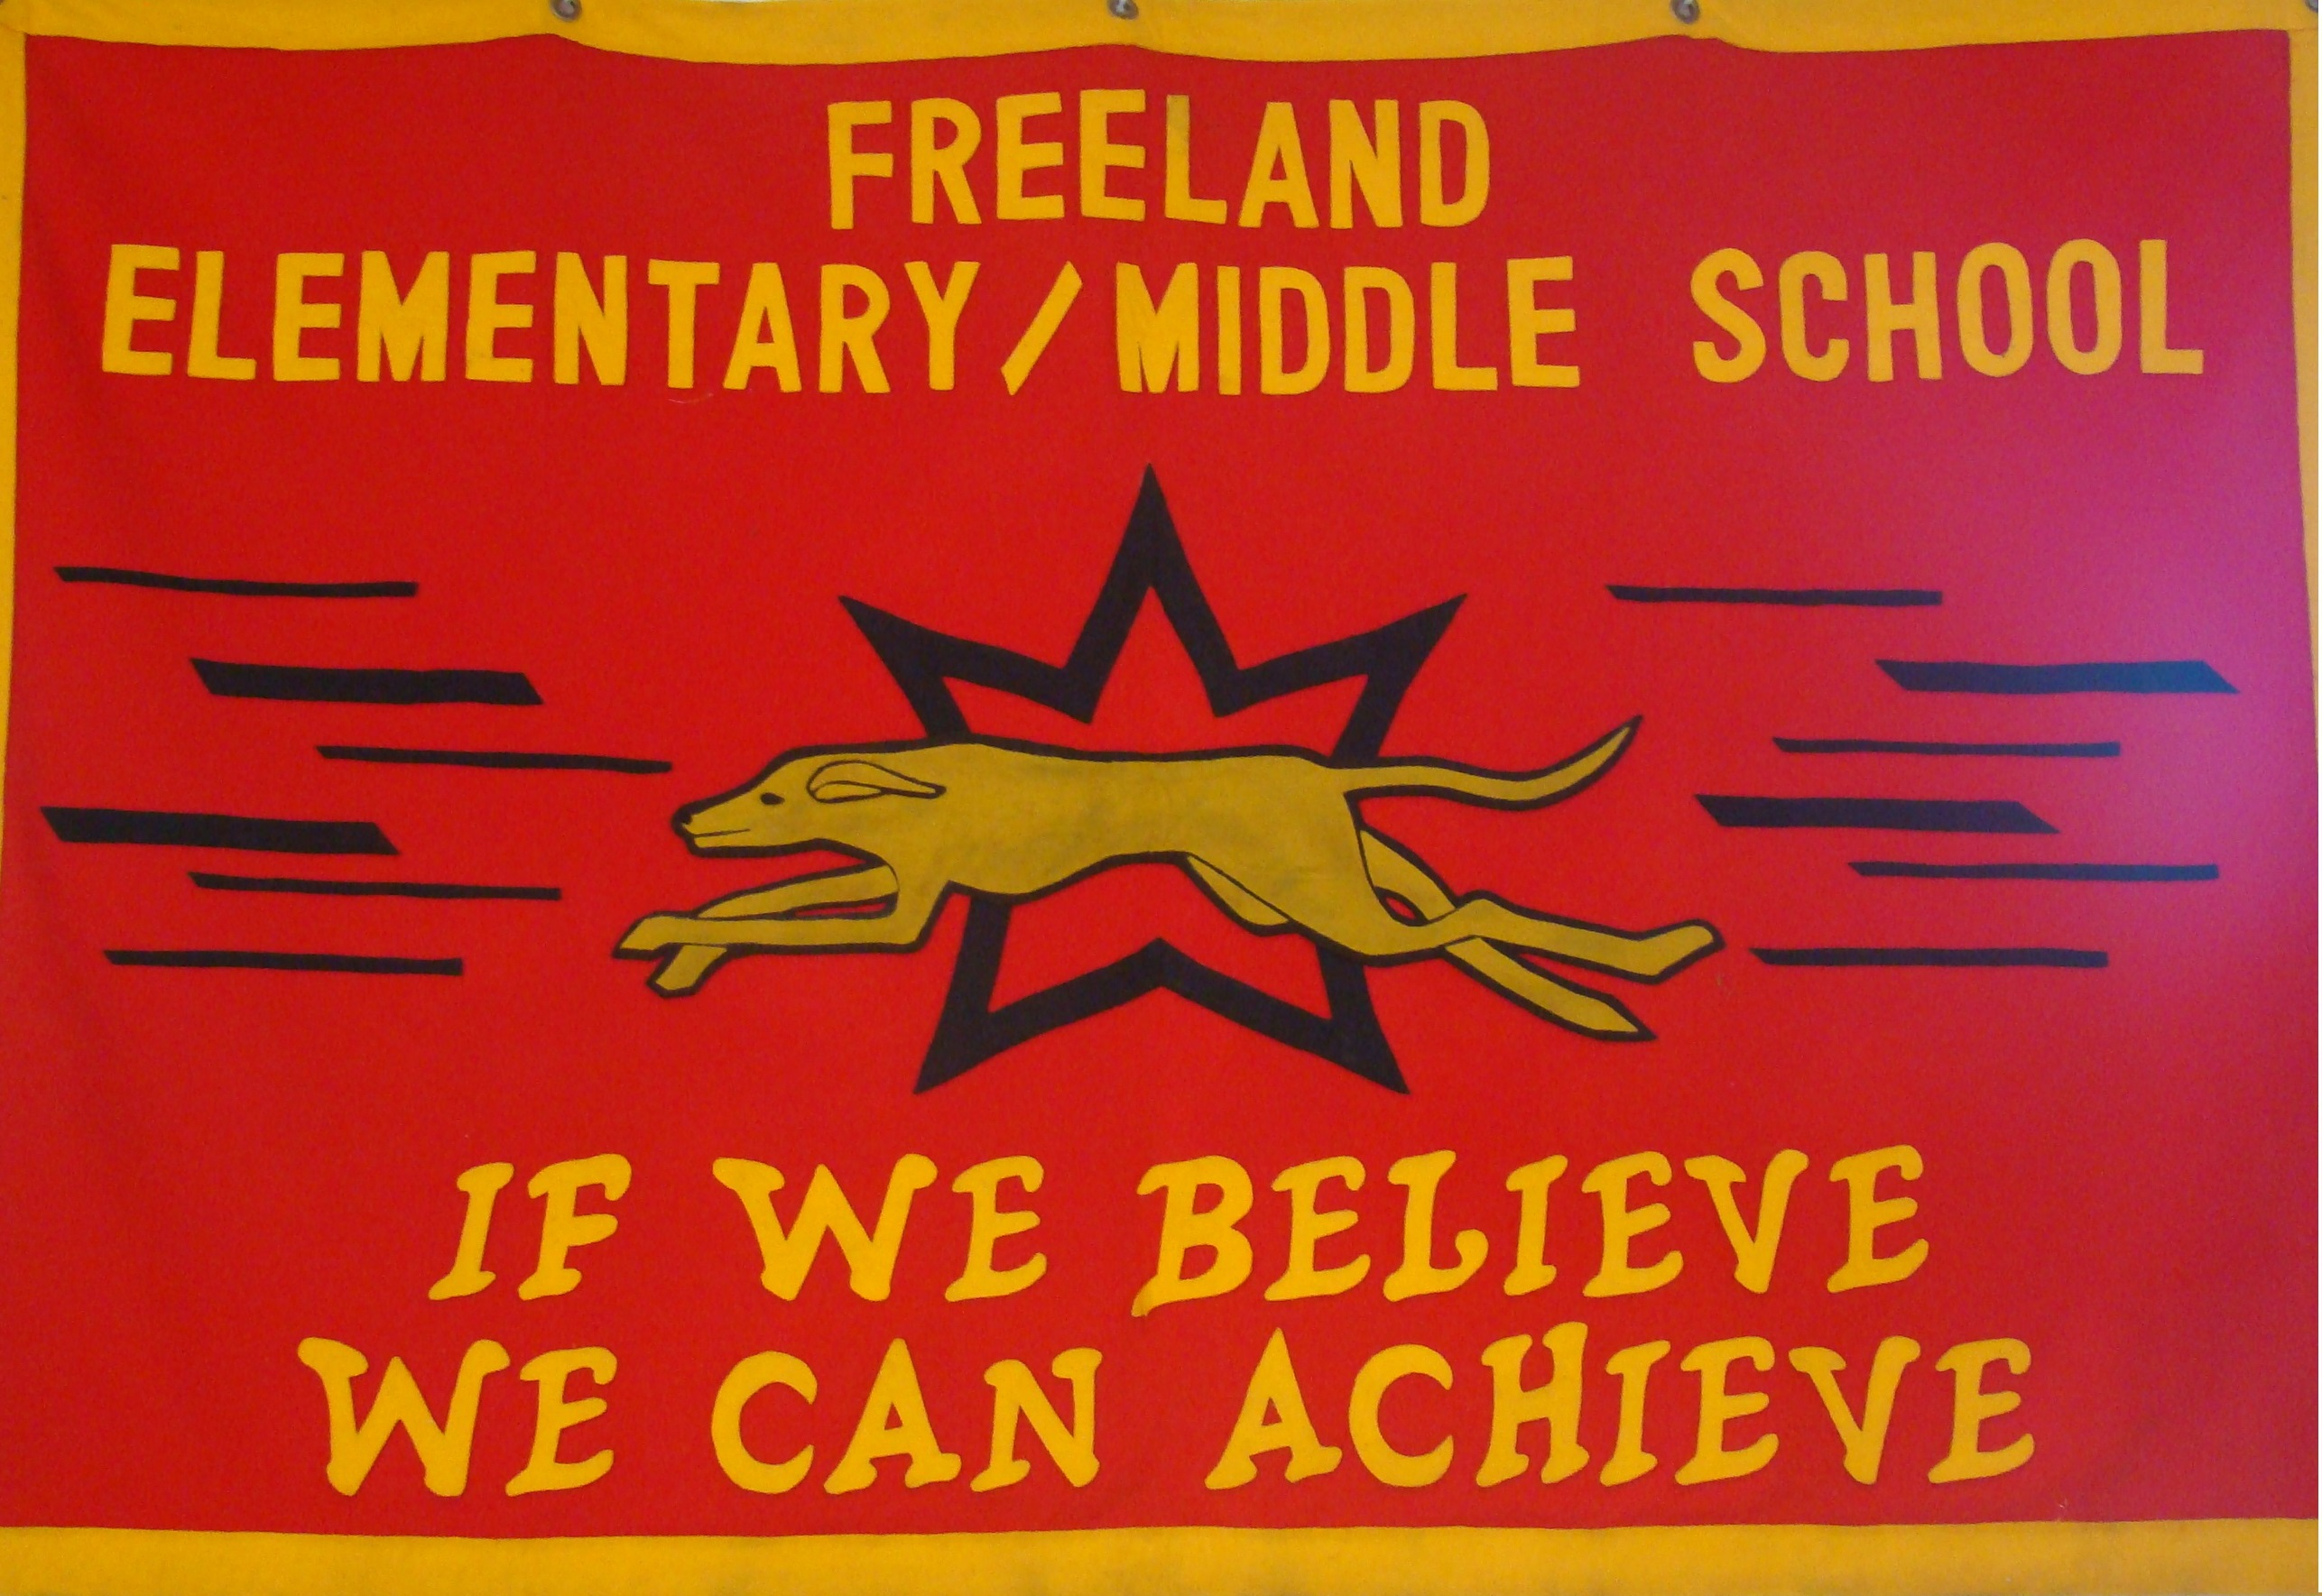 Freeland Elementary Middle School Banner